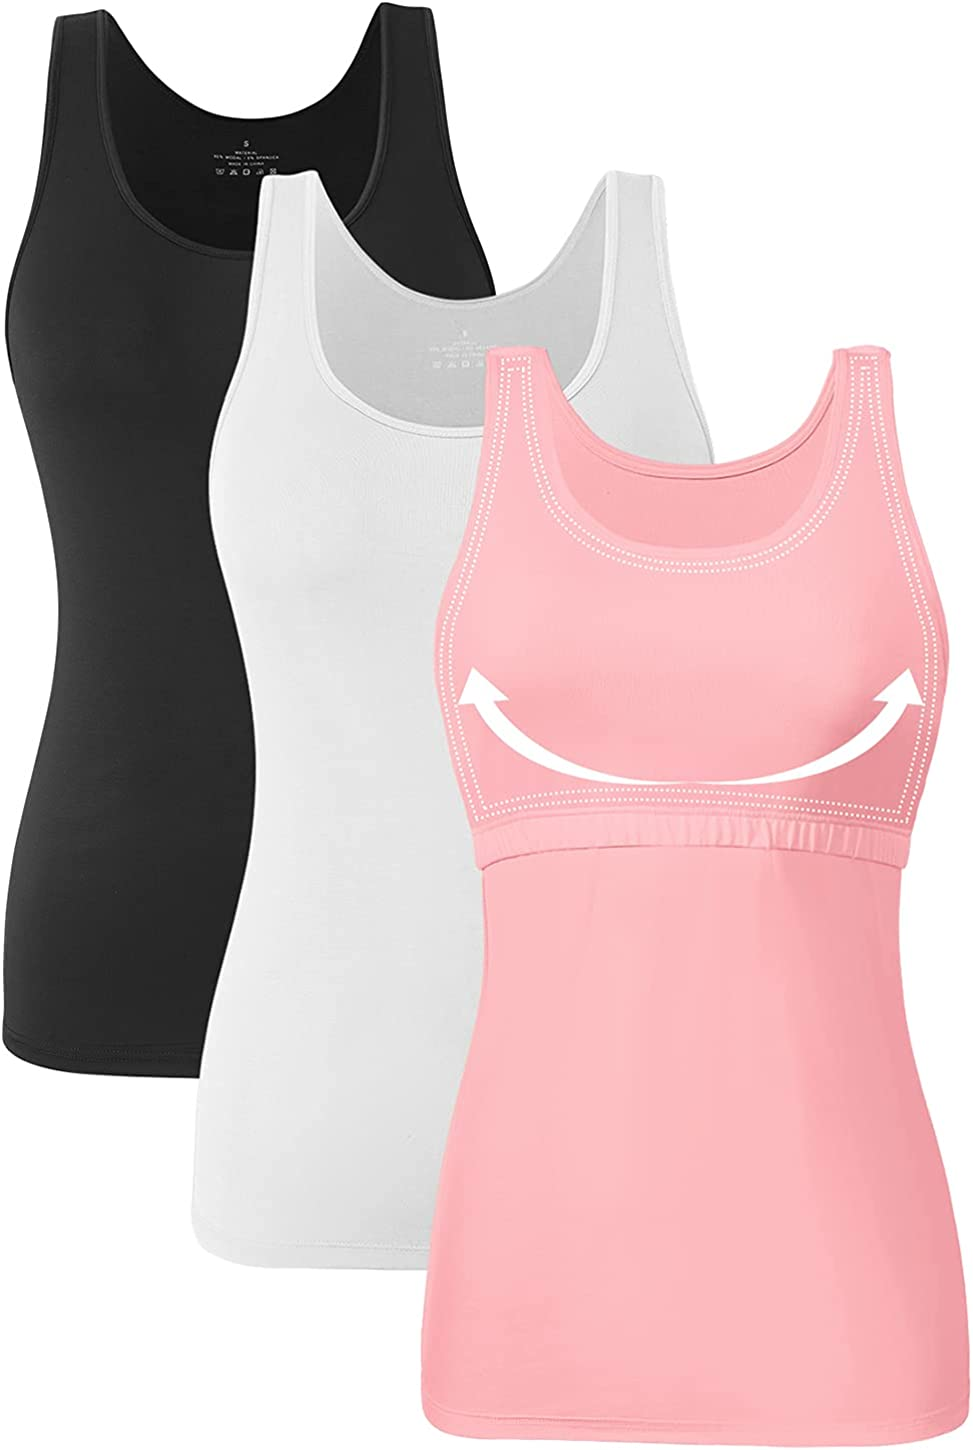 Orrpally Basic Cotton Tank Tops for Women Shelf Bra Tank Soft Solid Undershirts 3-Pack